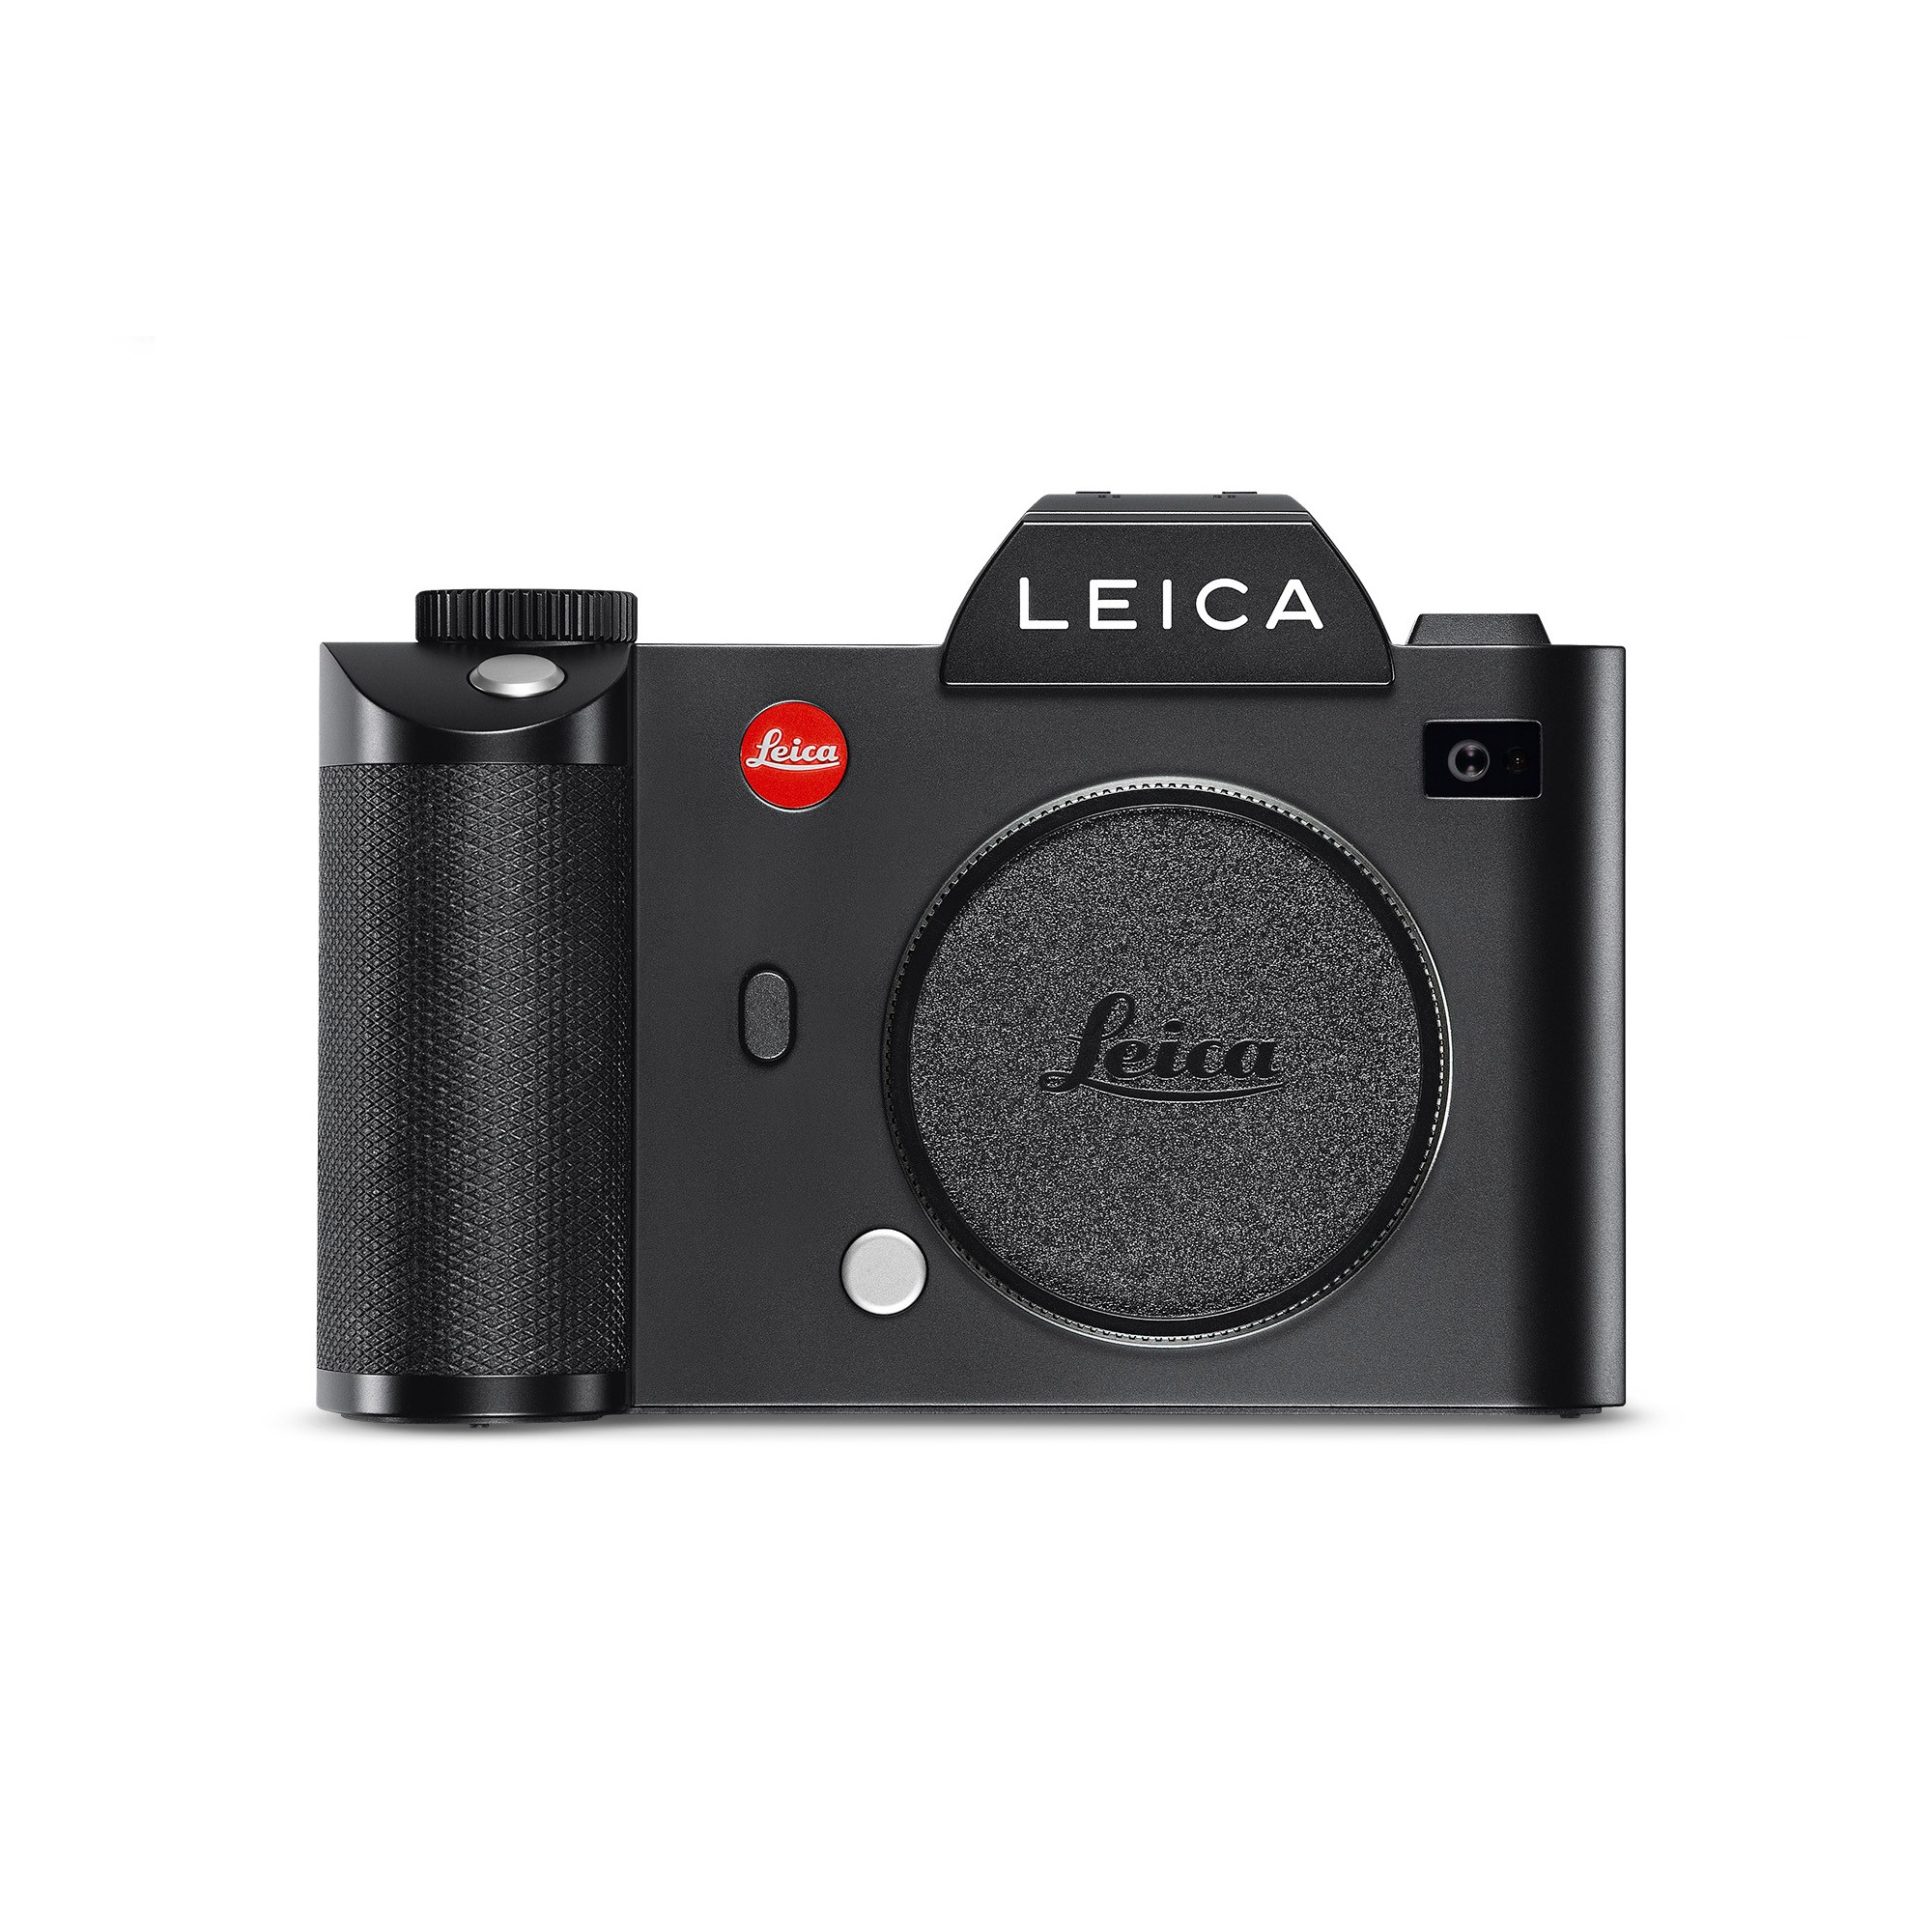 Leica SL (Typ 601) available to rent / verhuur / location at 50.8 Studio • Belgïe, Belgique, Belgium, Hasselblad, Huur, Location, Louer, Photo, Rent, Rental, Strobe, Studio, Verhuur, Video